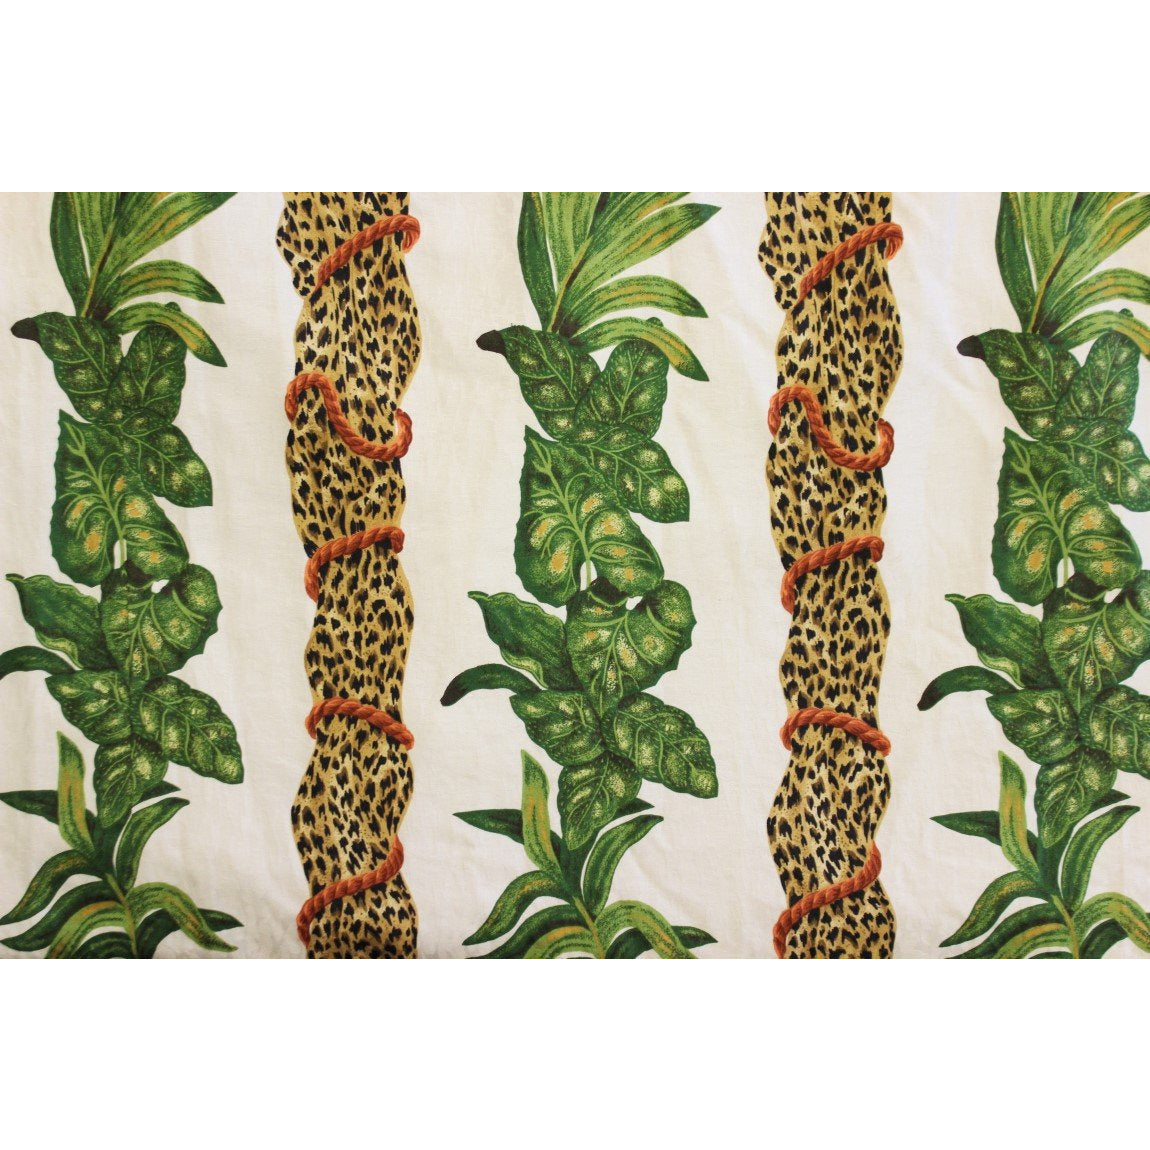 Two Large Curtain Panels w/ Pinch Pleats; Leopard Print & Jungle Leaves Curtain Panels